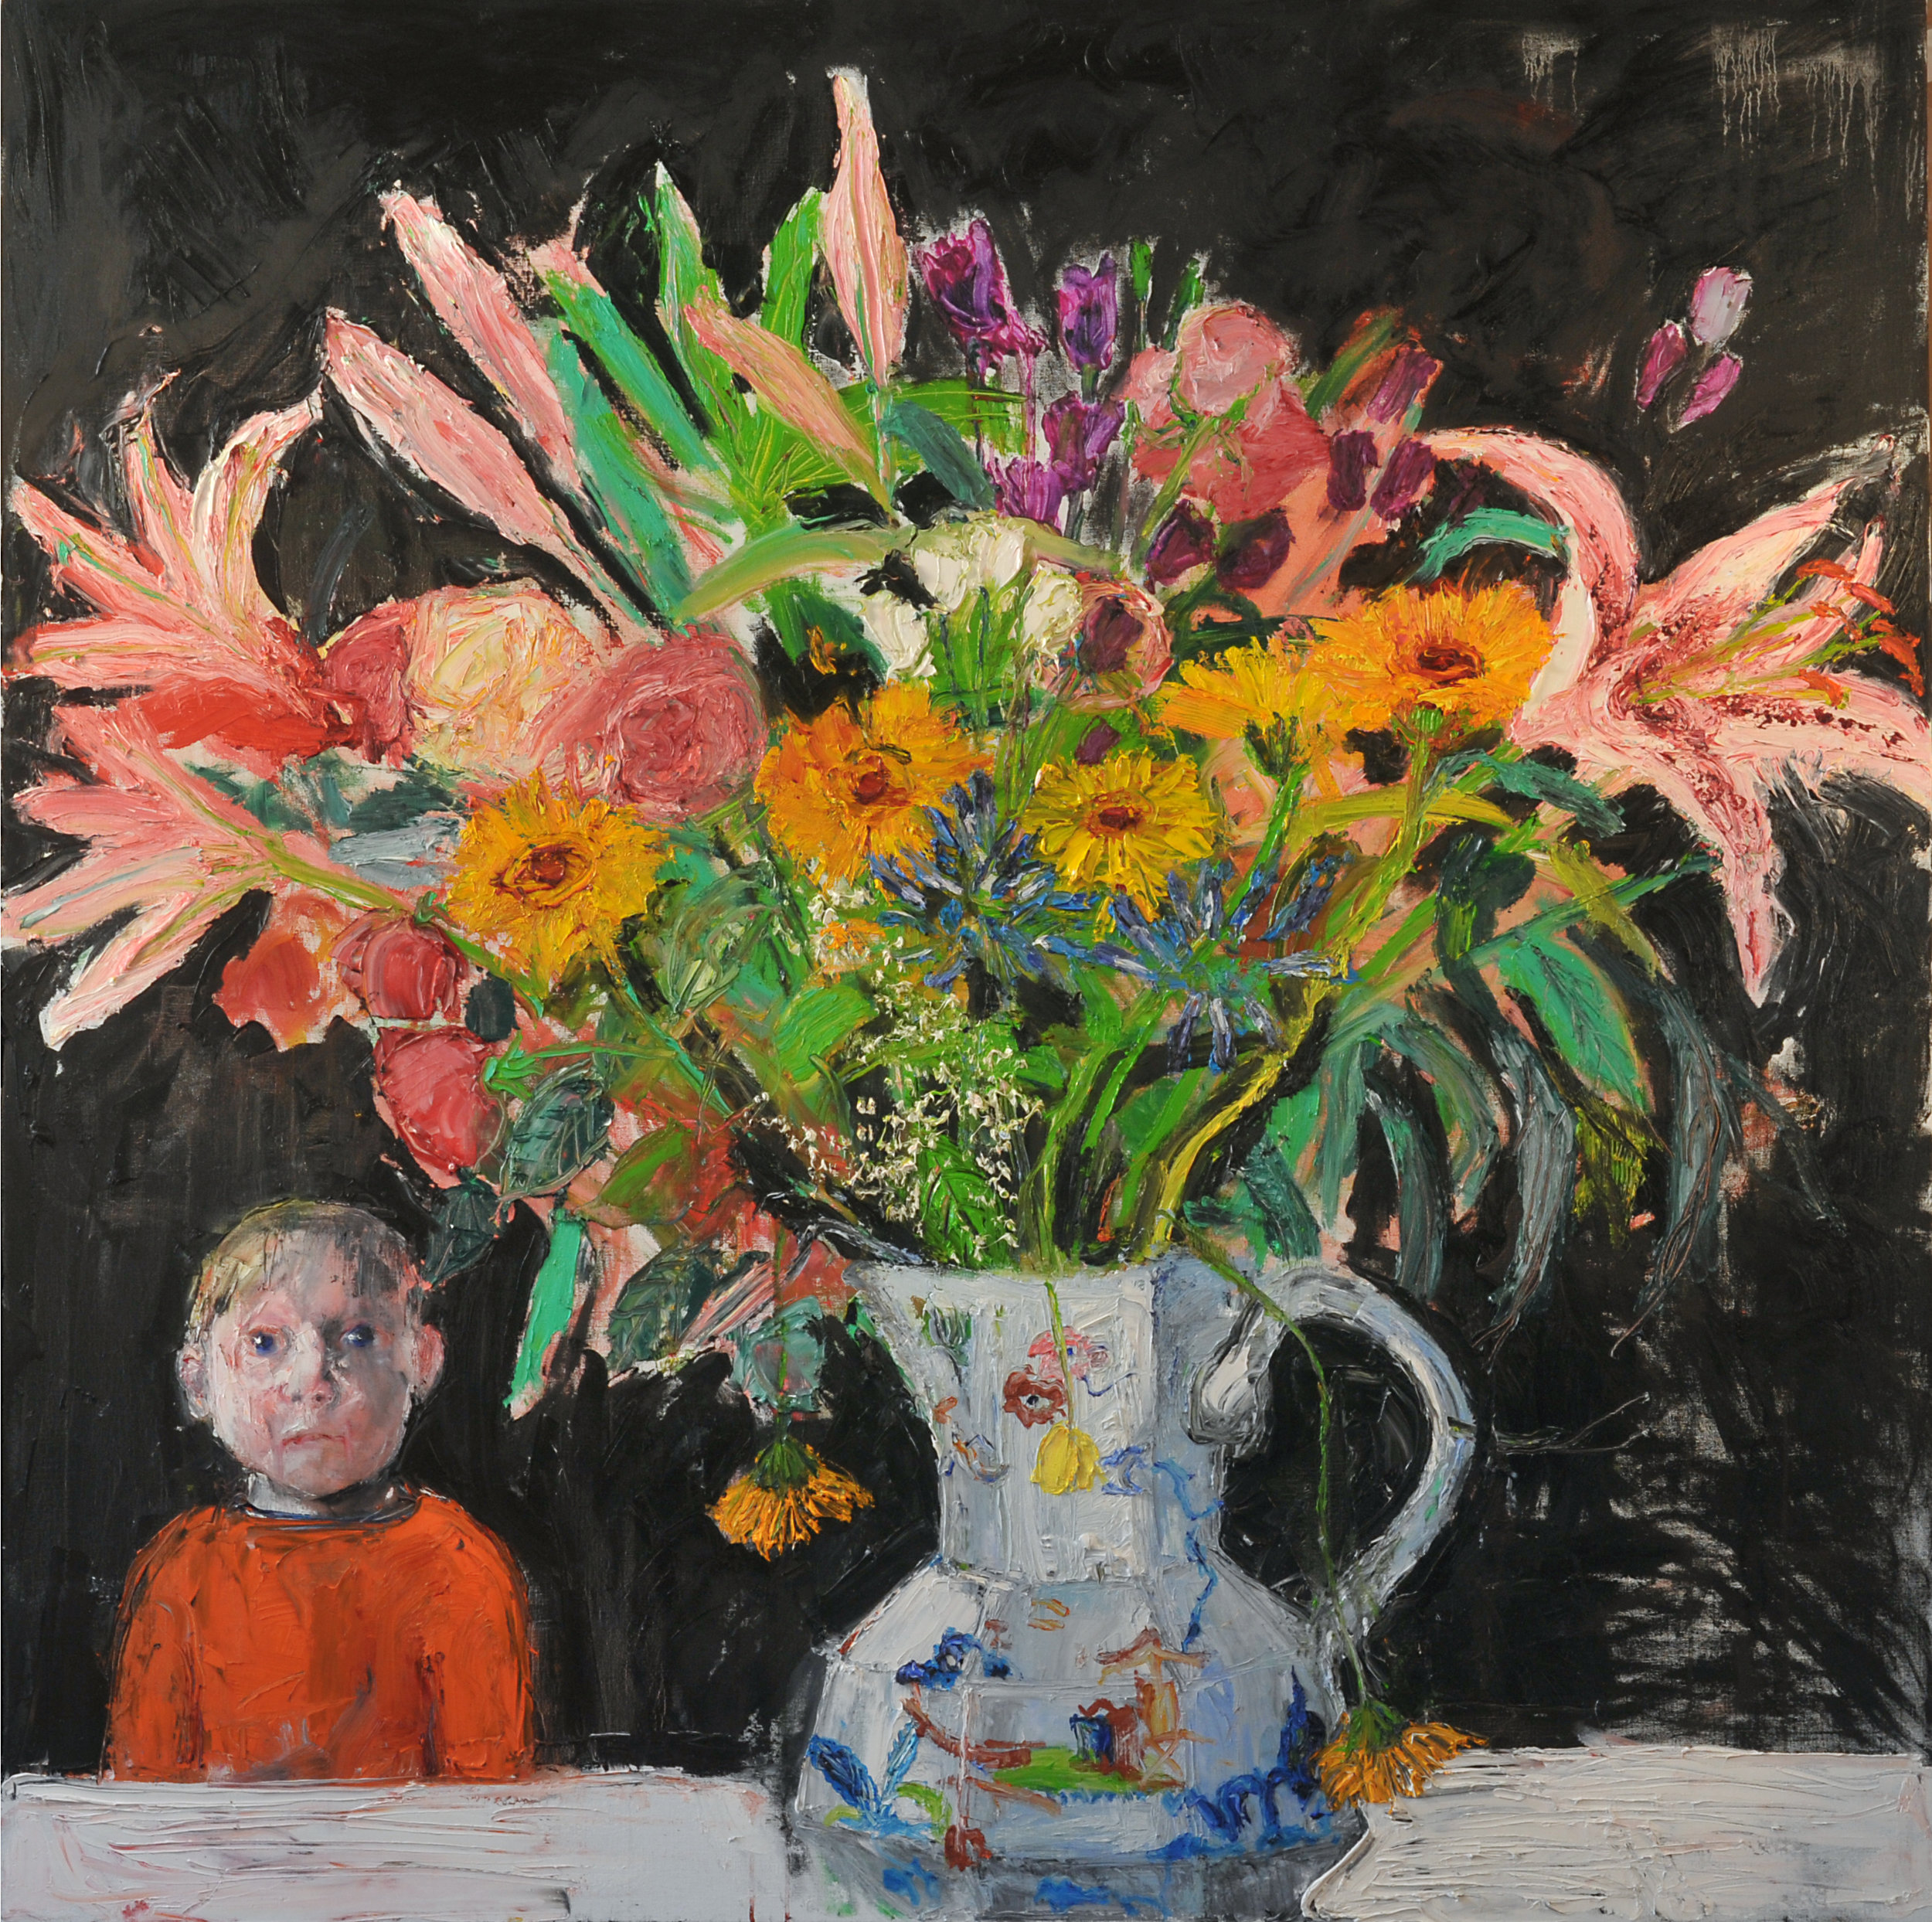 Boy and Bouquet 152x152cms oil on linen 2017